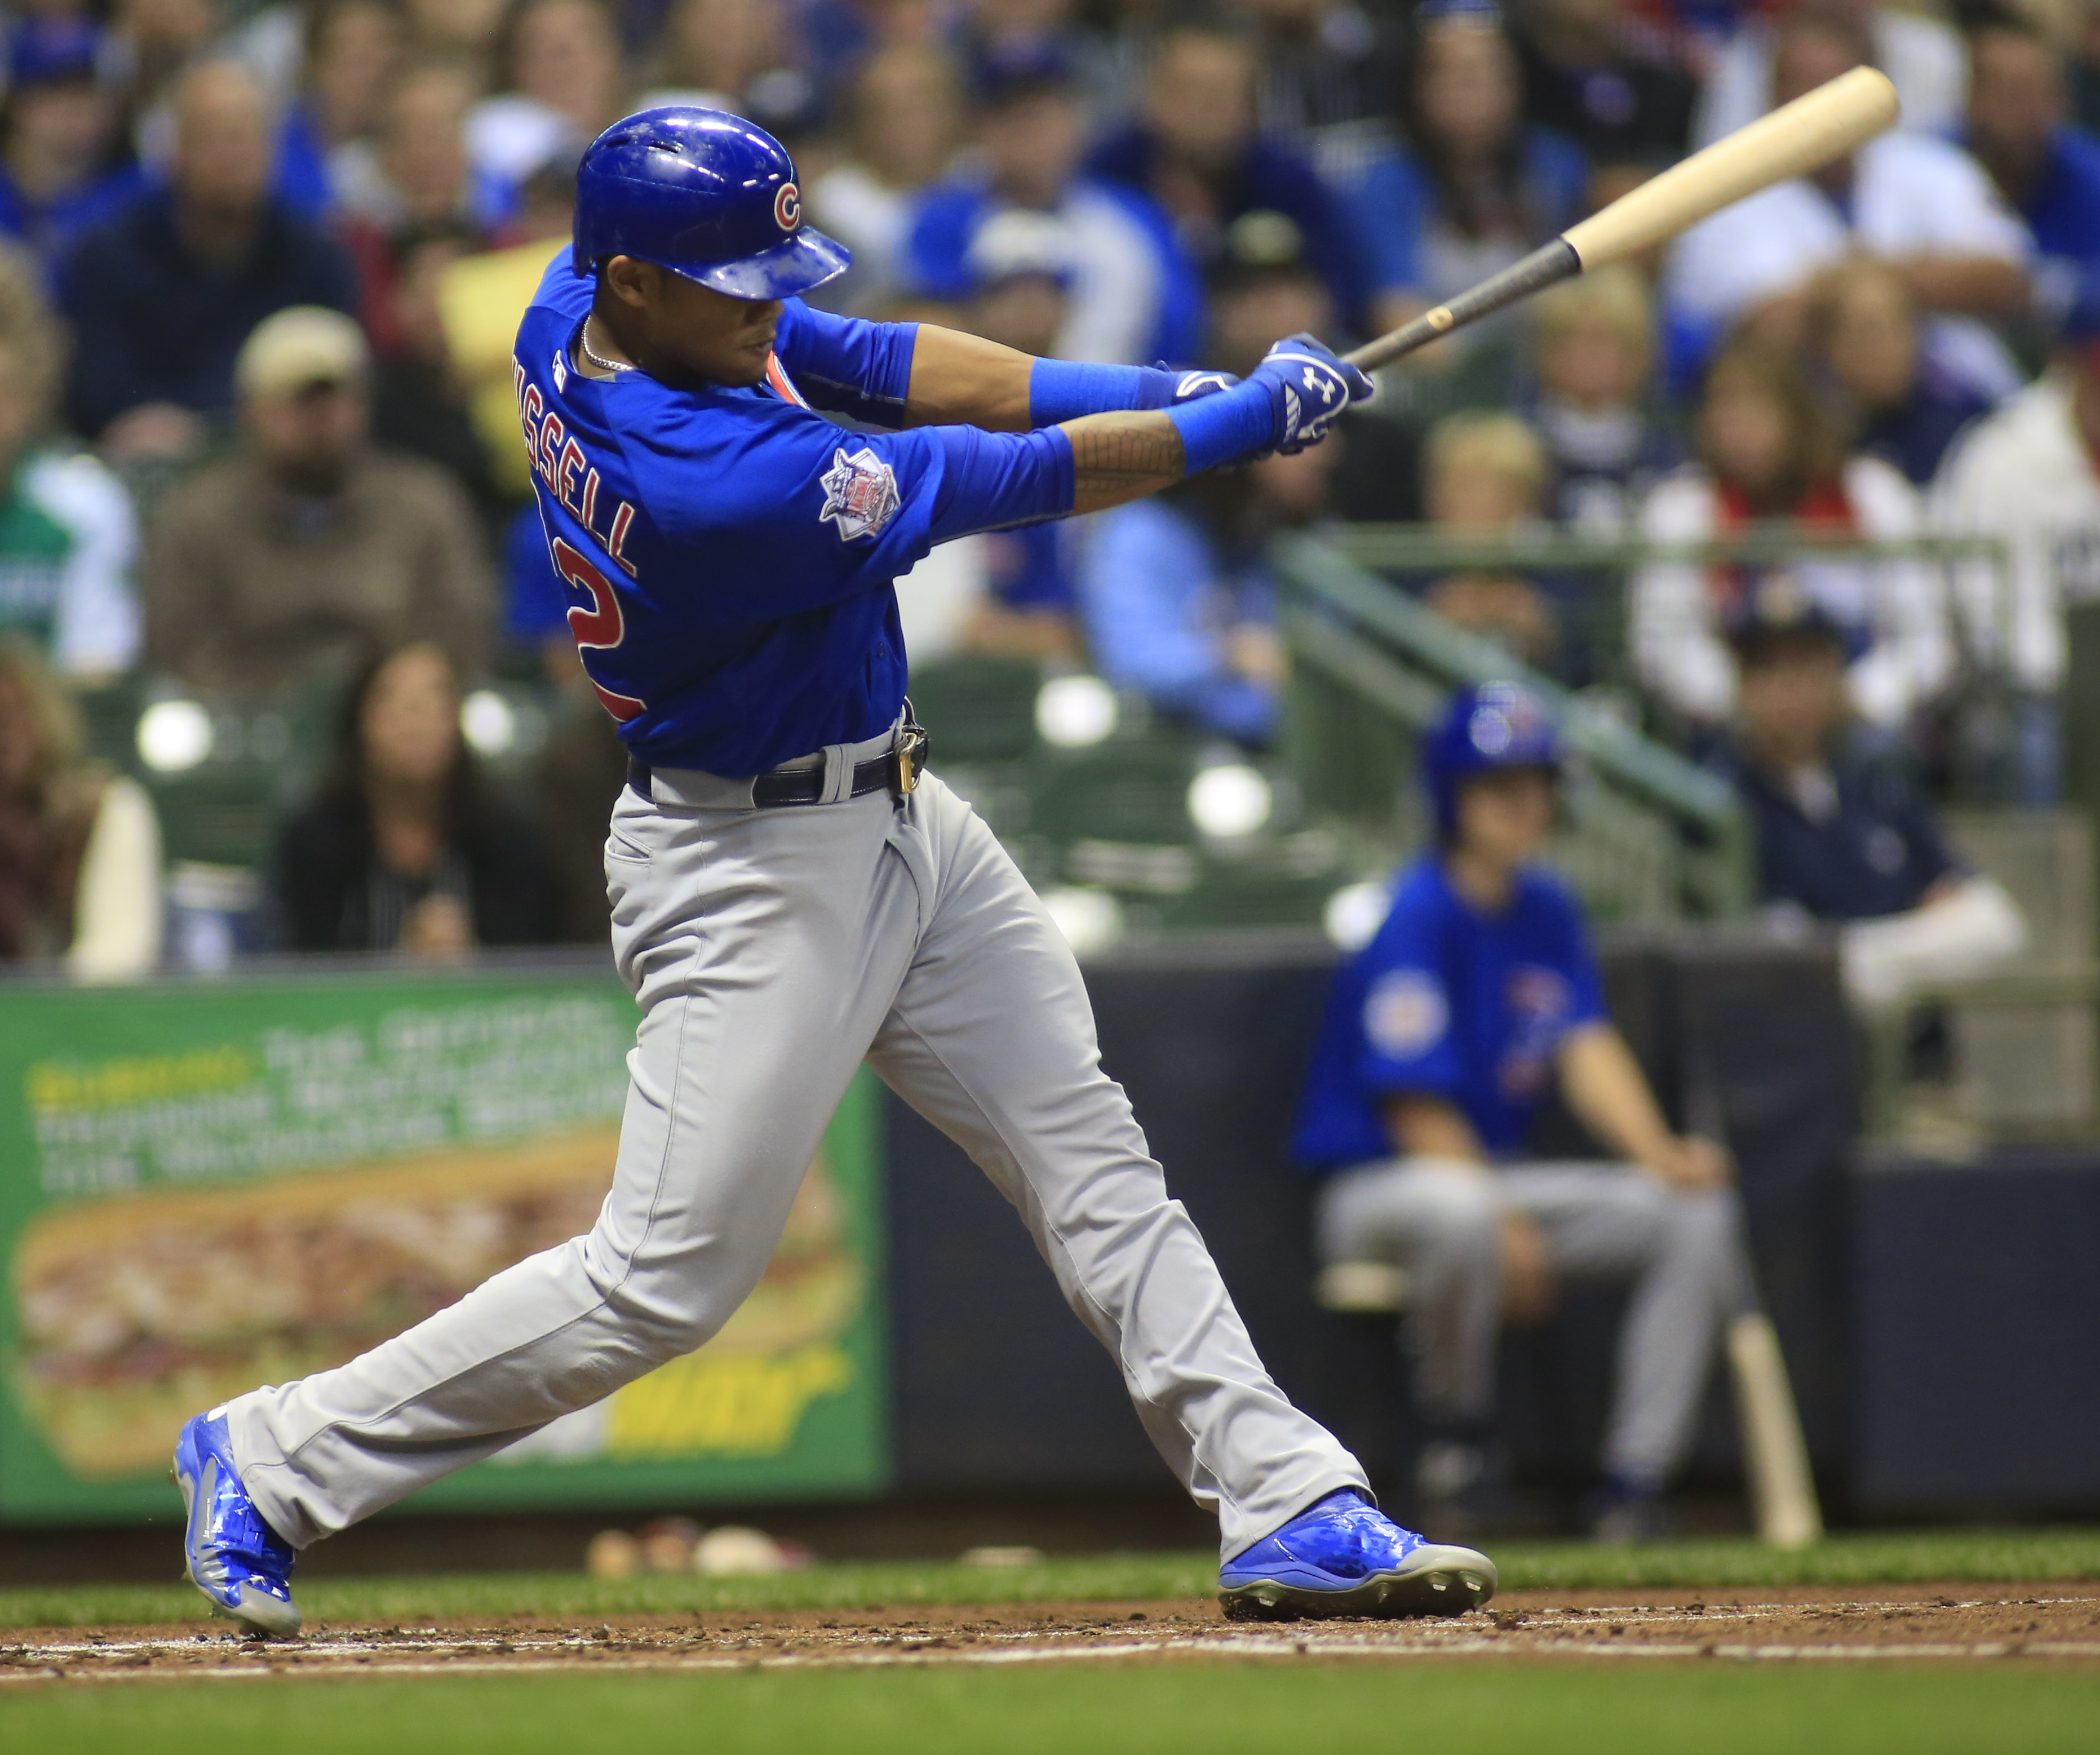 Chicago Cubs' Addison Russell hits a RBI single against the Milwaukee Brewers during the second inning of a baseball game Saturday, Oct. 3, 2015, in Milwaukee. (AP Photo/Darren Hauck)